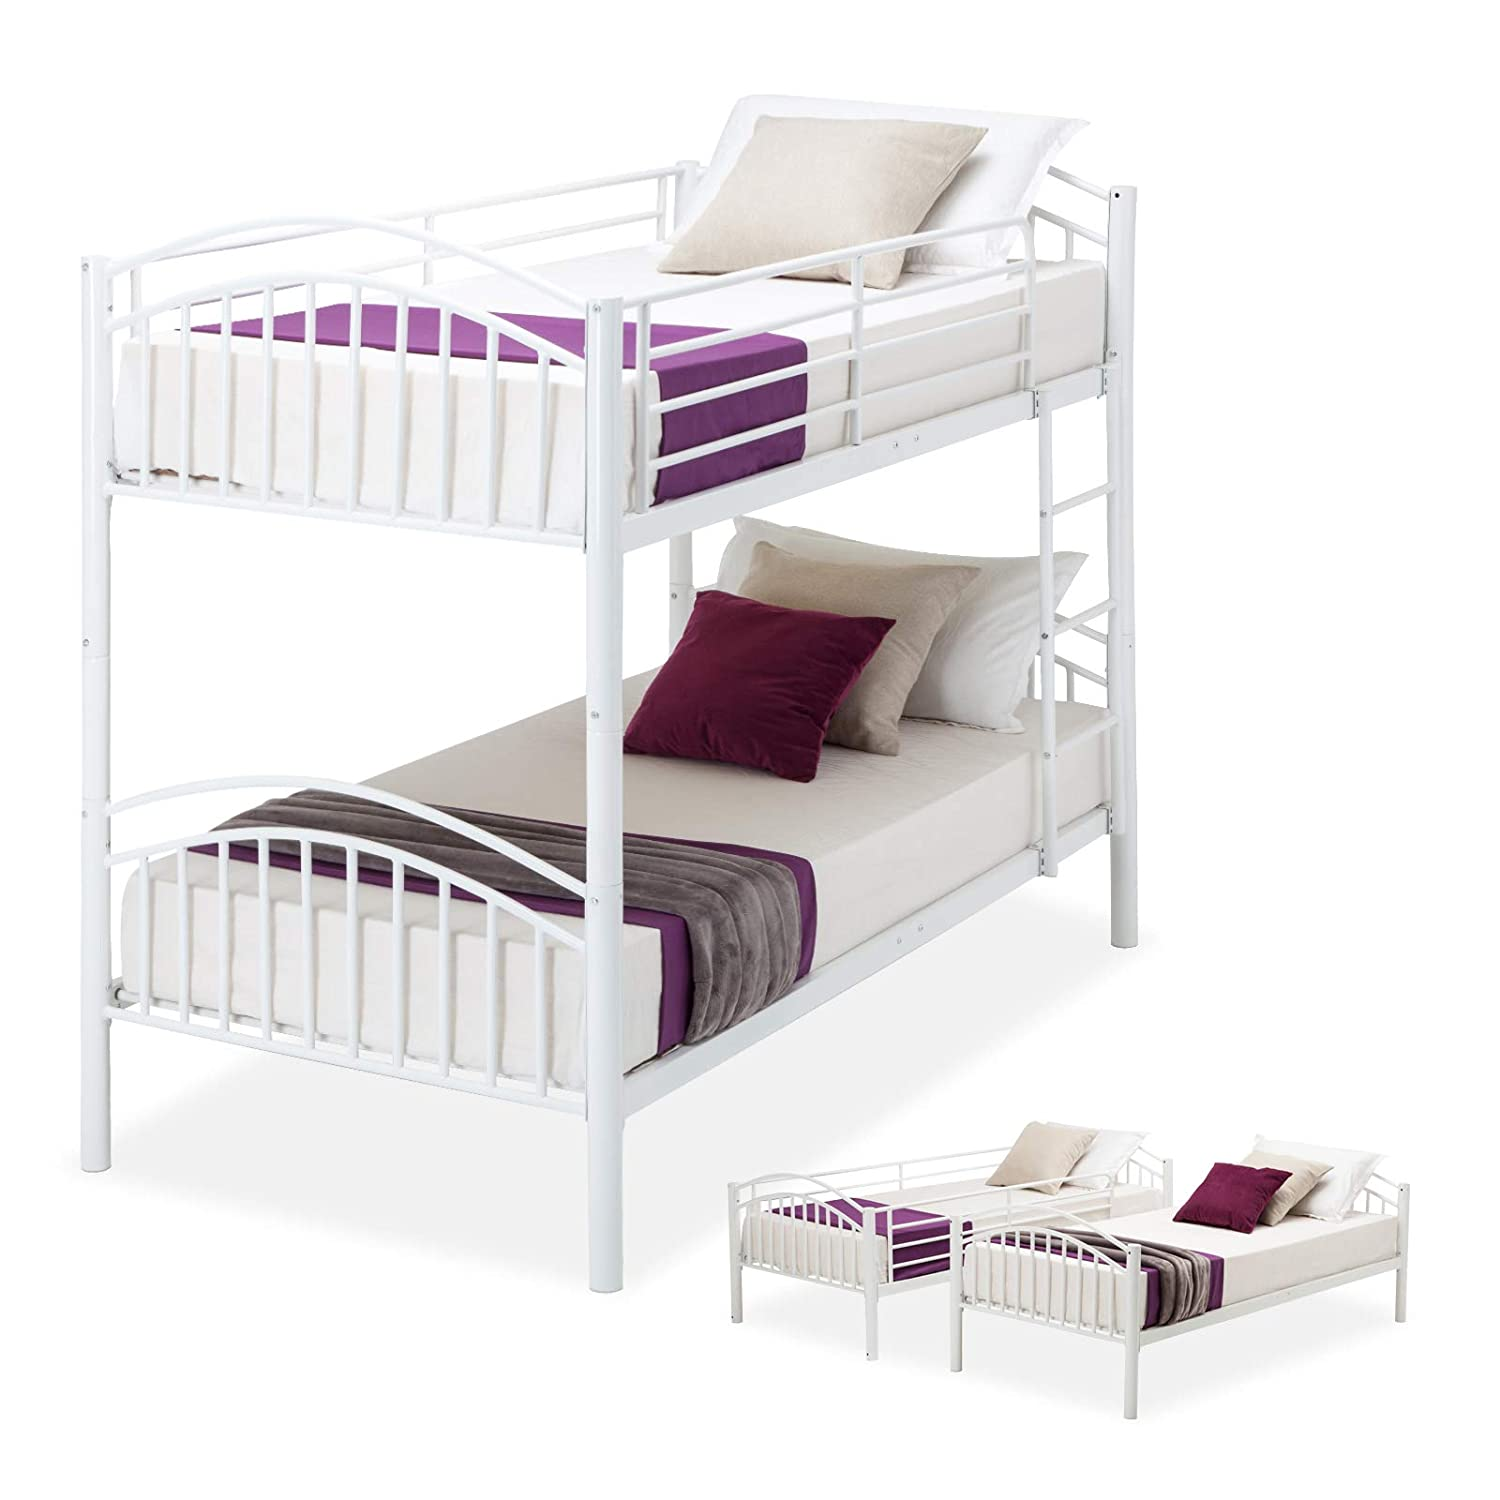 Amazoncom Lagrima Twin Over Twin Bunk Beds Convertible Metal Bunk